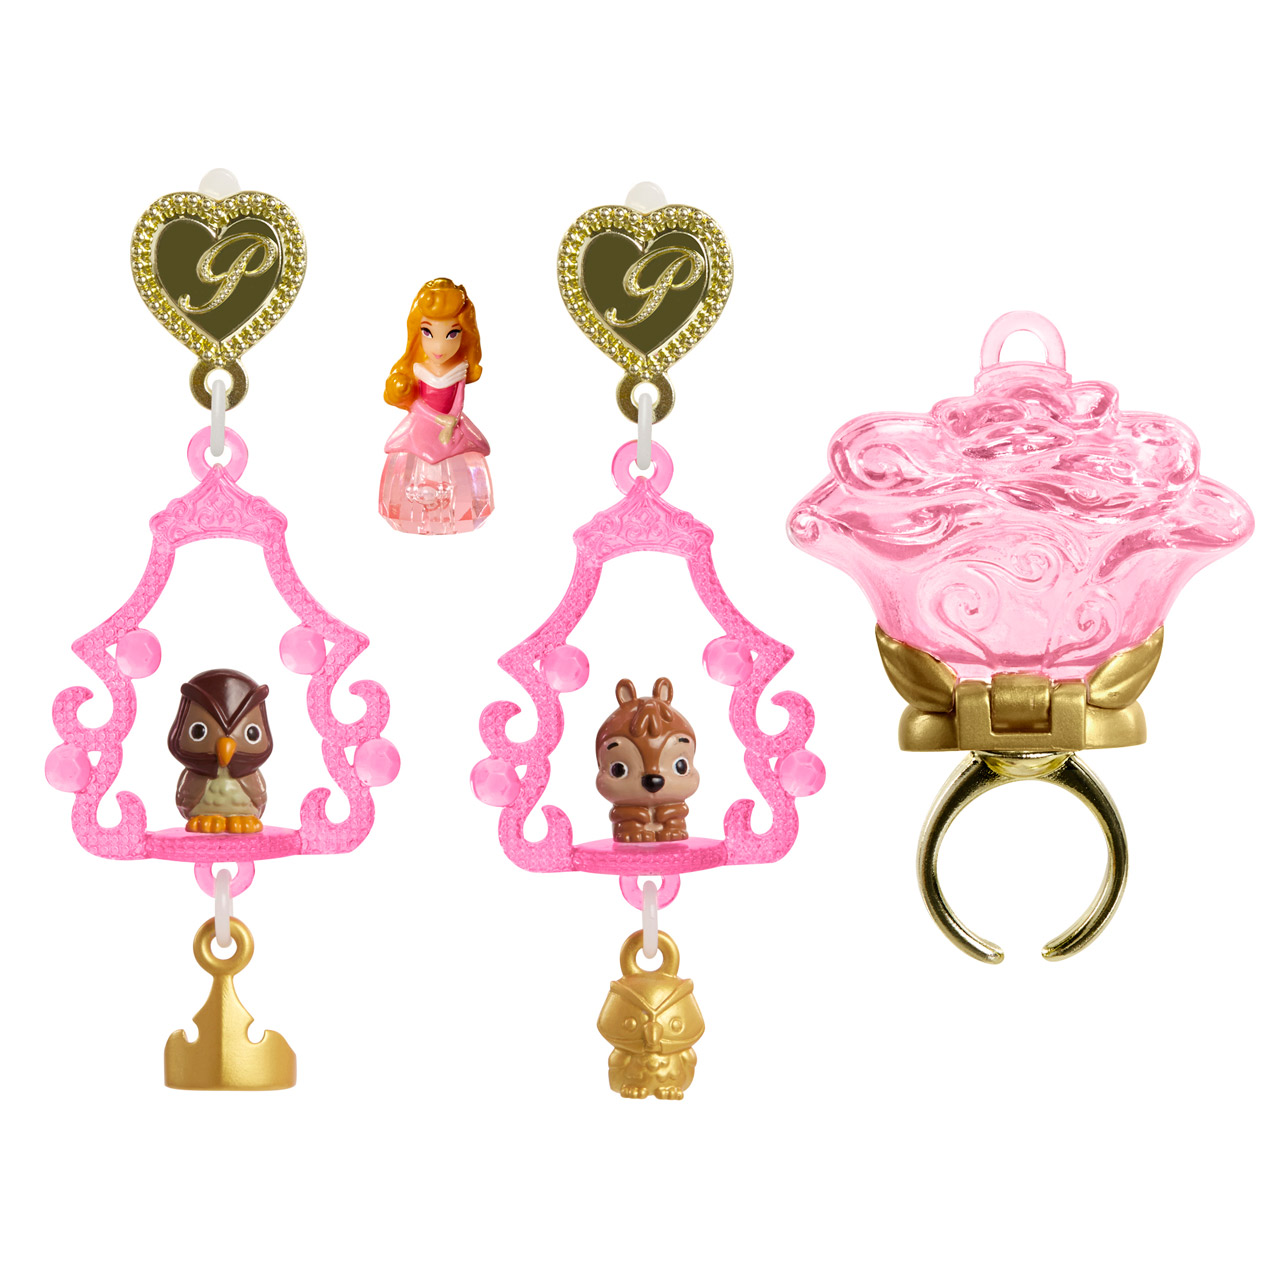 Disney Princess Little Kingdom Jewelery Set | Disney